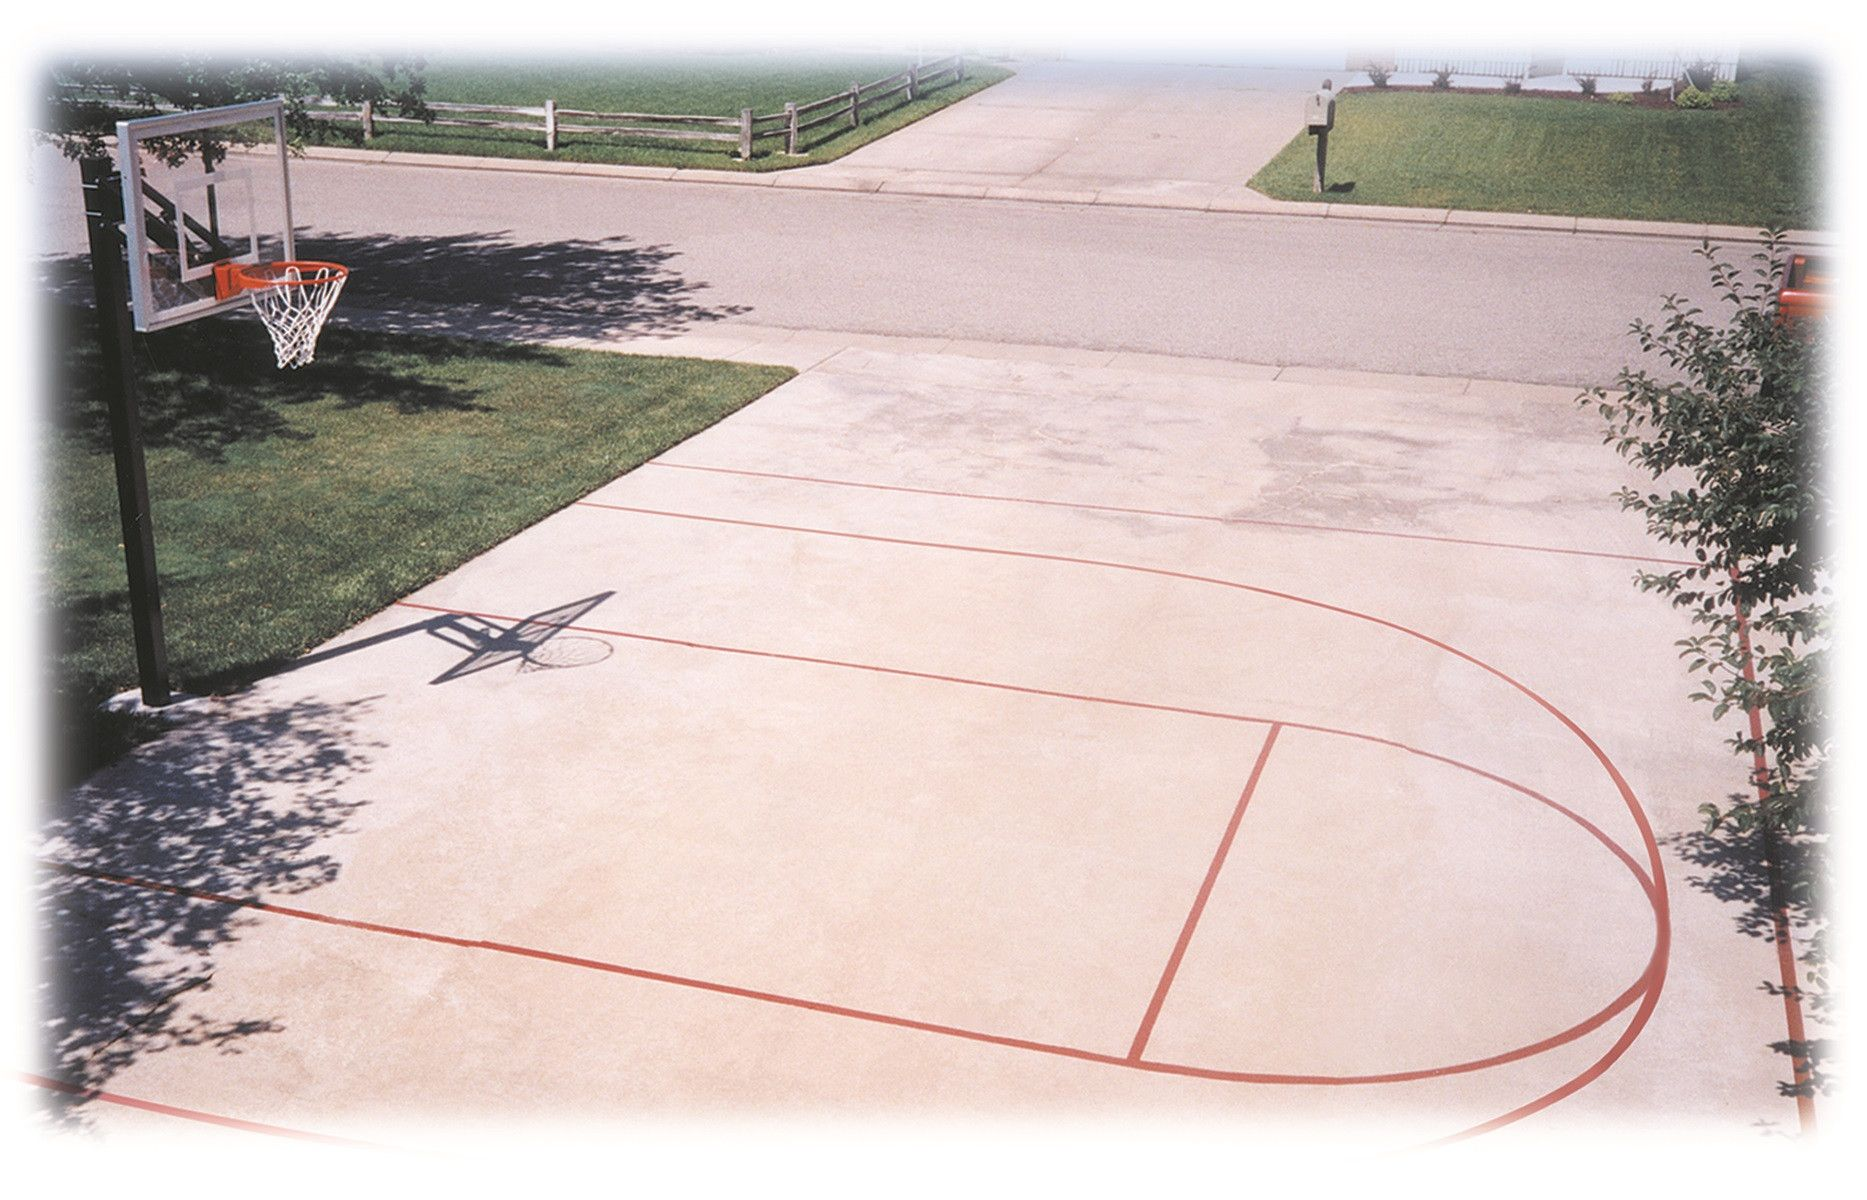 Tips To Make Your Own Basketball Court Stencils Layouts Dimensions Basketball Floor Basketball Court Size Basketball Court Backyard